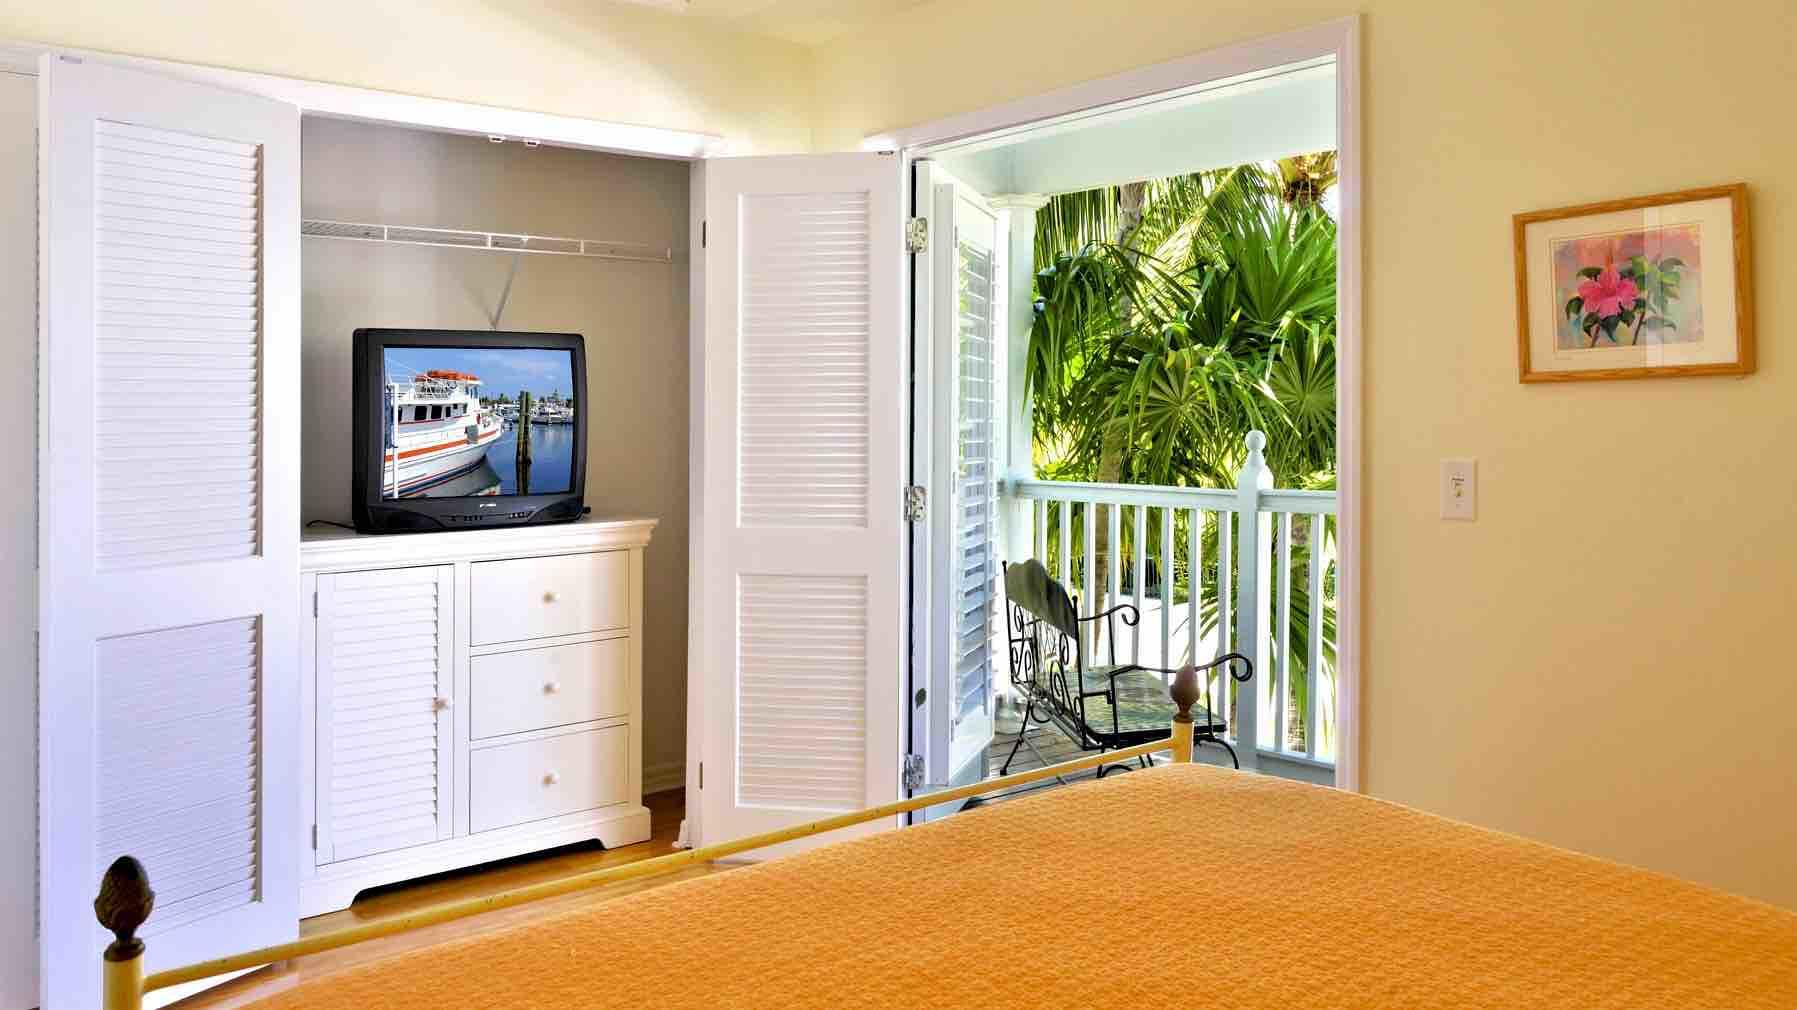 The third bedroom has its own private balcony. Flat screen TV has been installed...